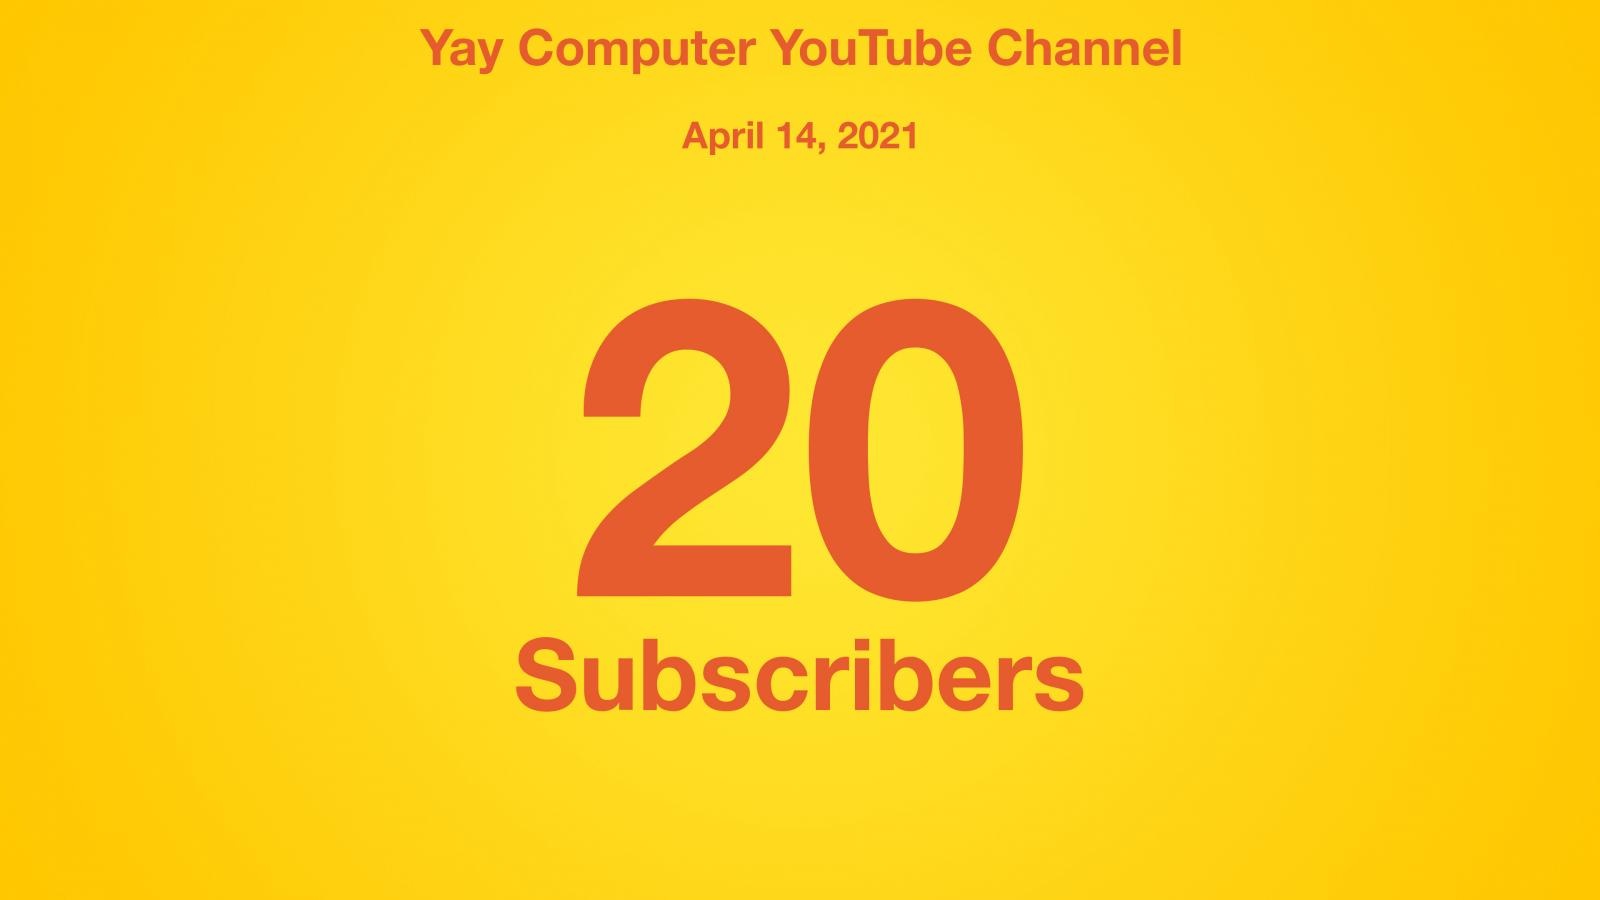 Yay Computer YouTube Channel, April 14 2021, 20 Subscribers